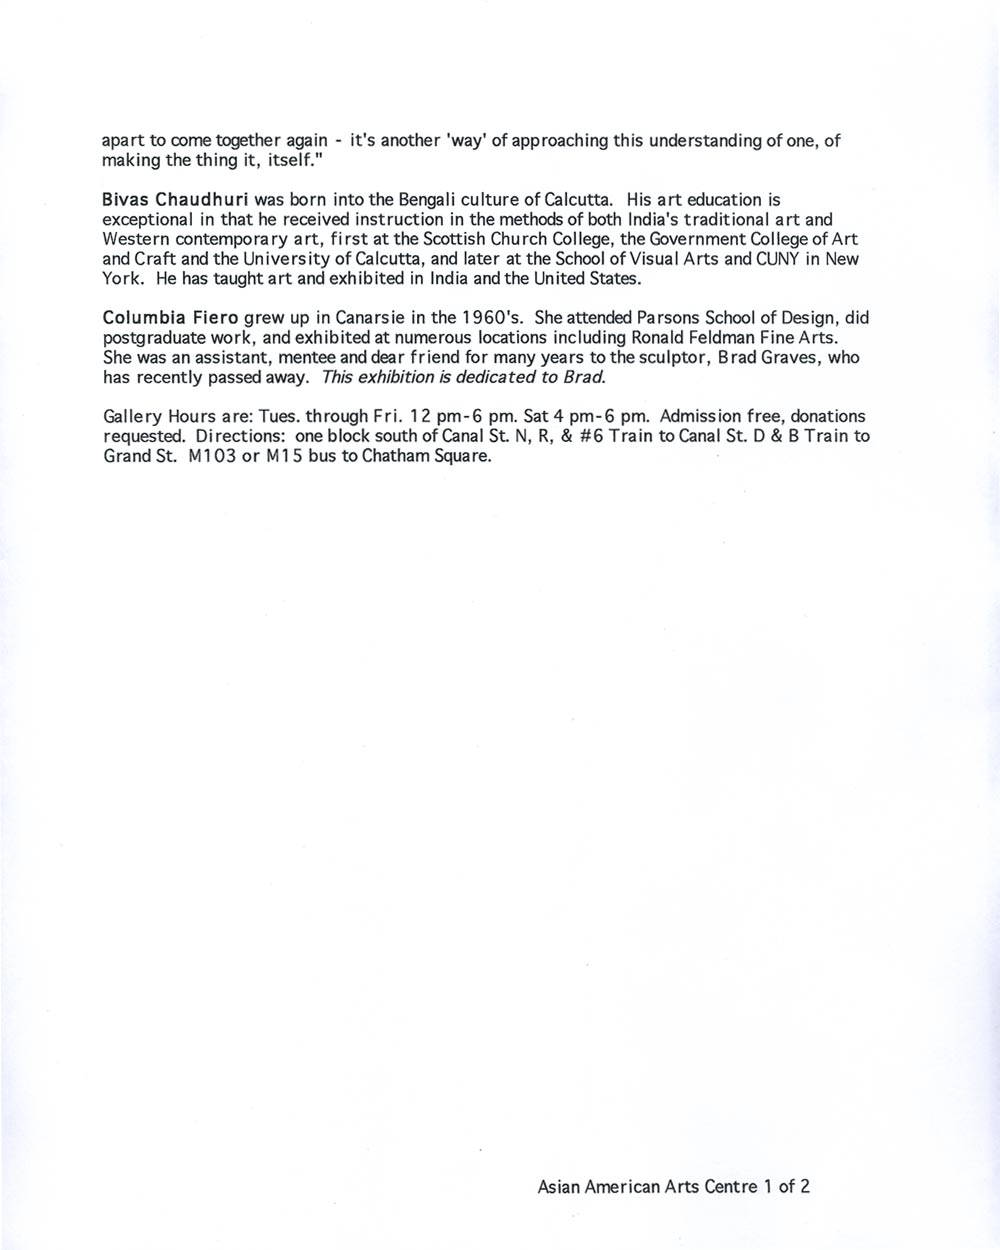 Inside One press release, pg 2